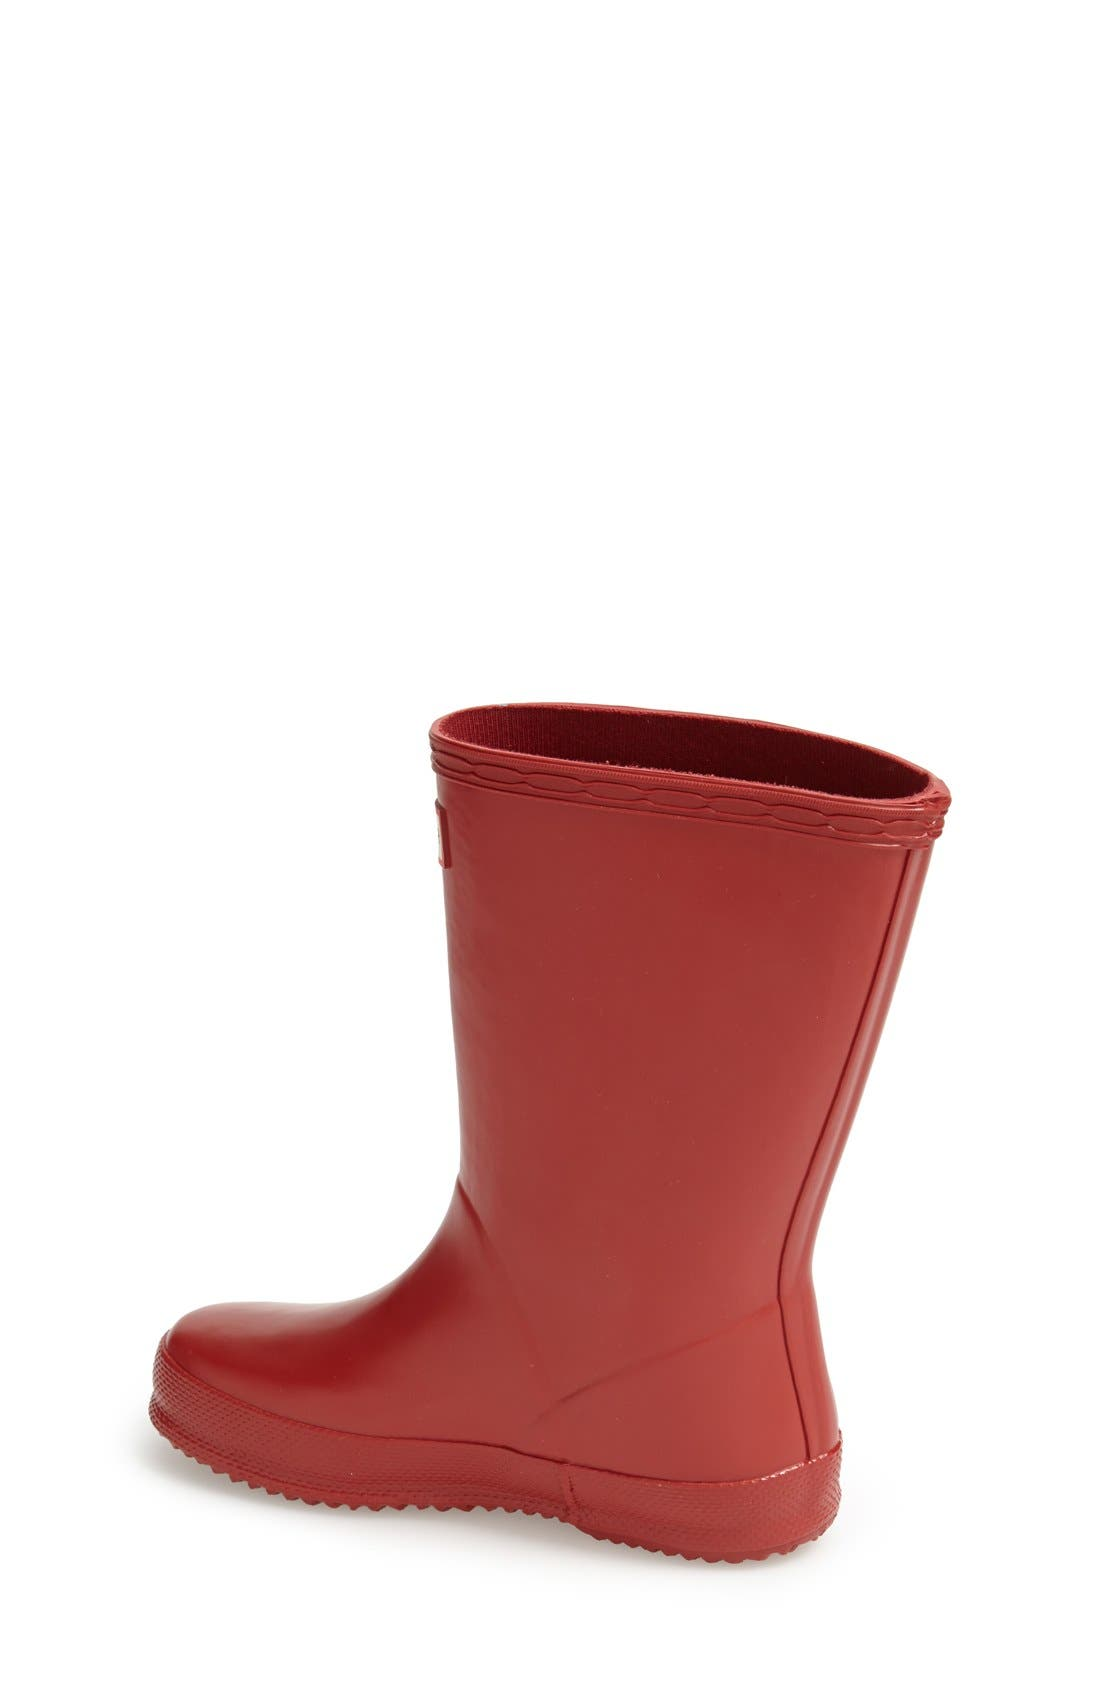 'First Classic' Rain Boot,                             Alternate thumbnail 2, color,                             Military Red